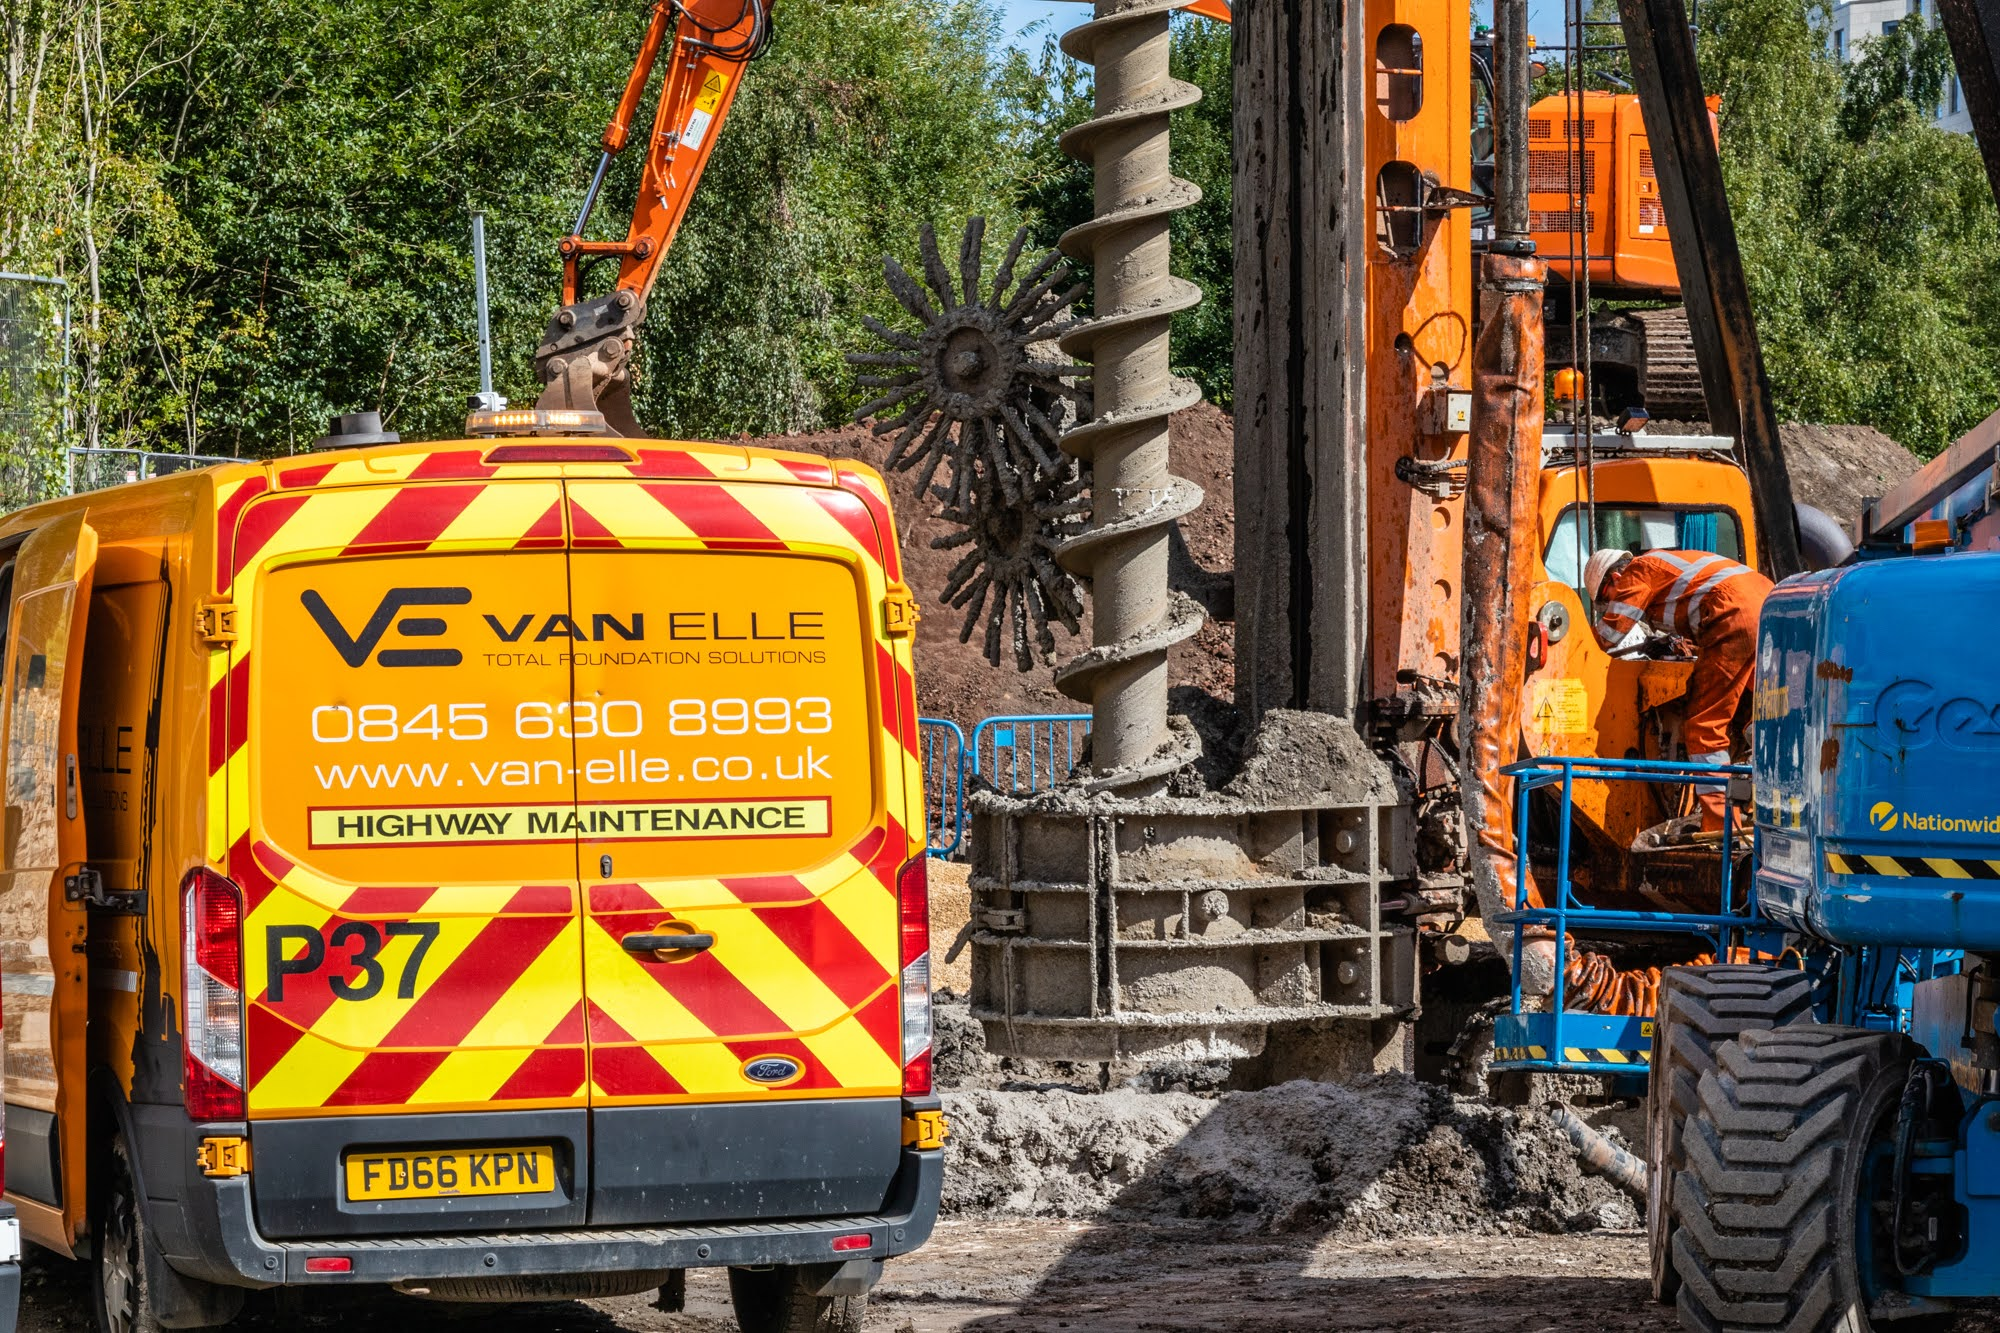 Van Elle named number one geotechnical services contractor